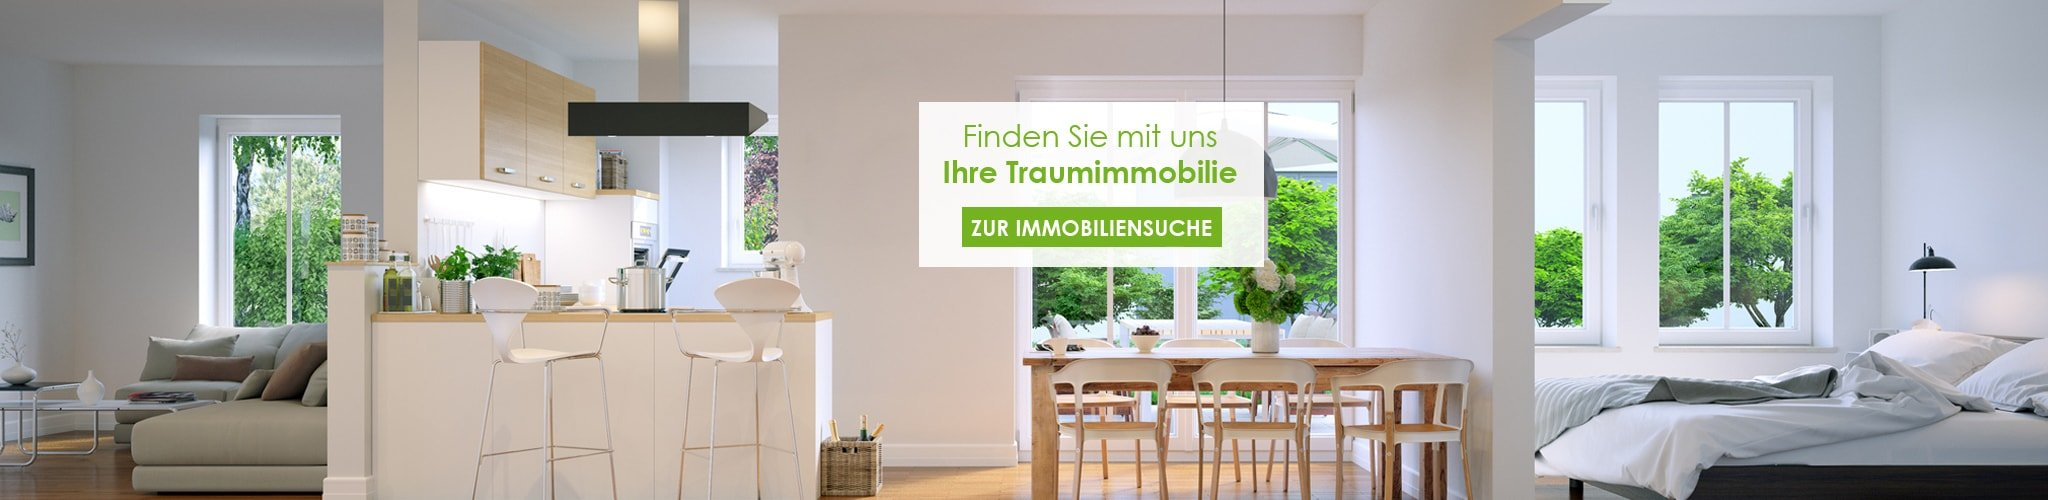 5plus Immobilien Traumimmobilie finden